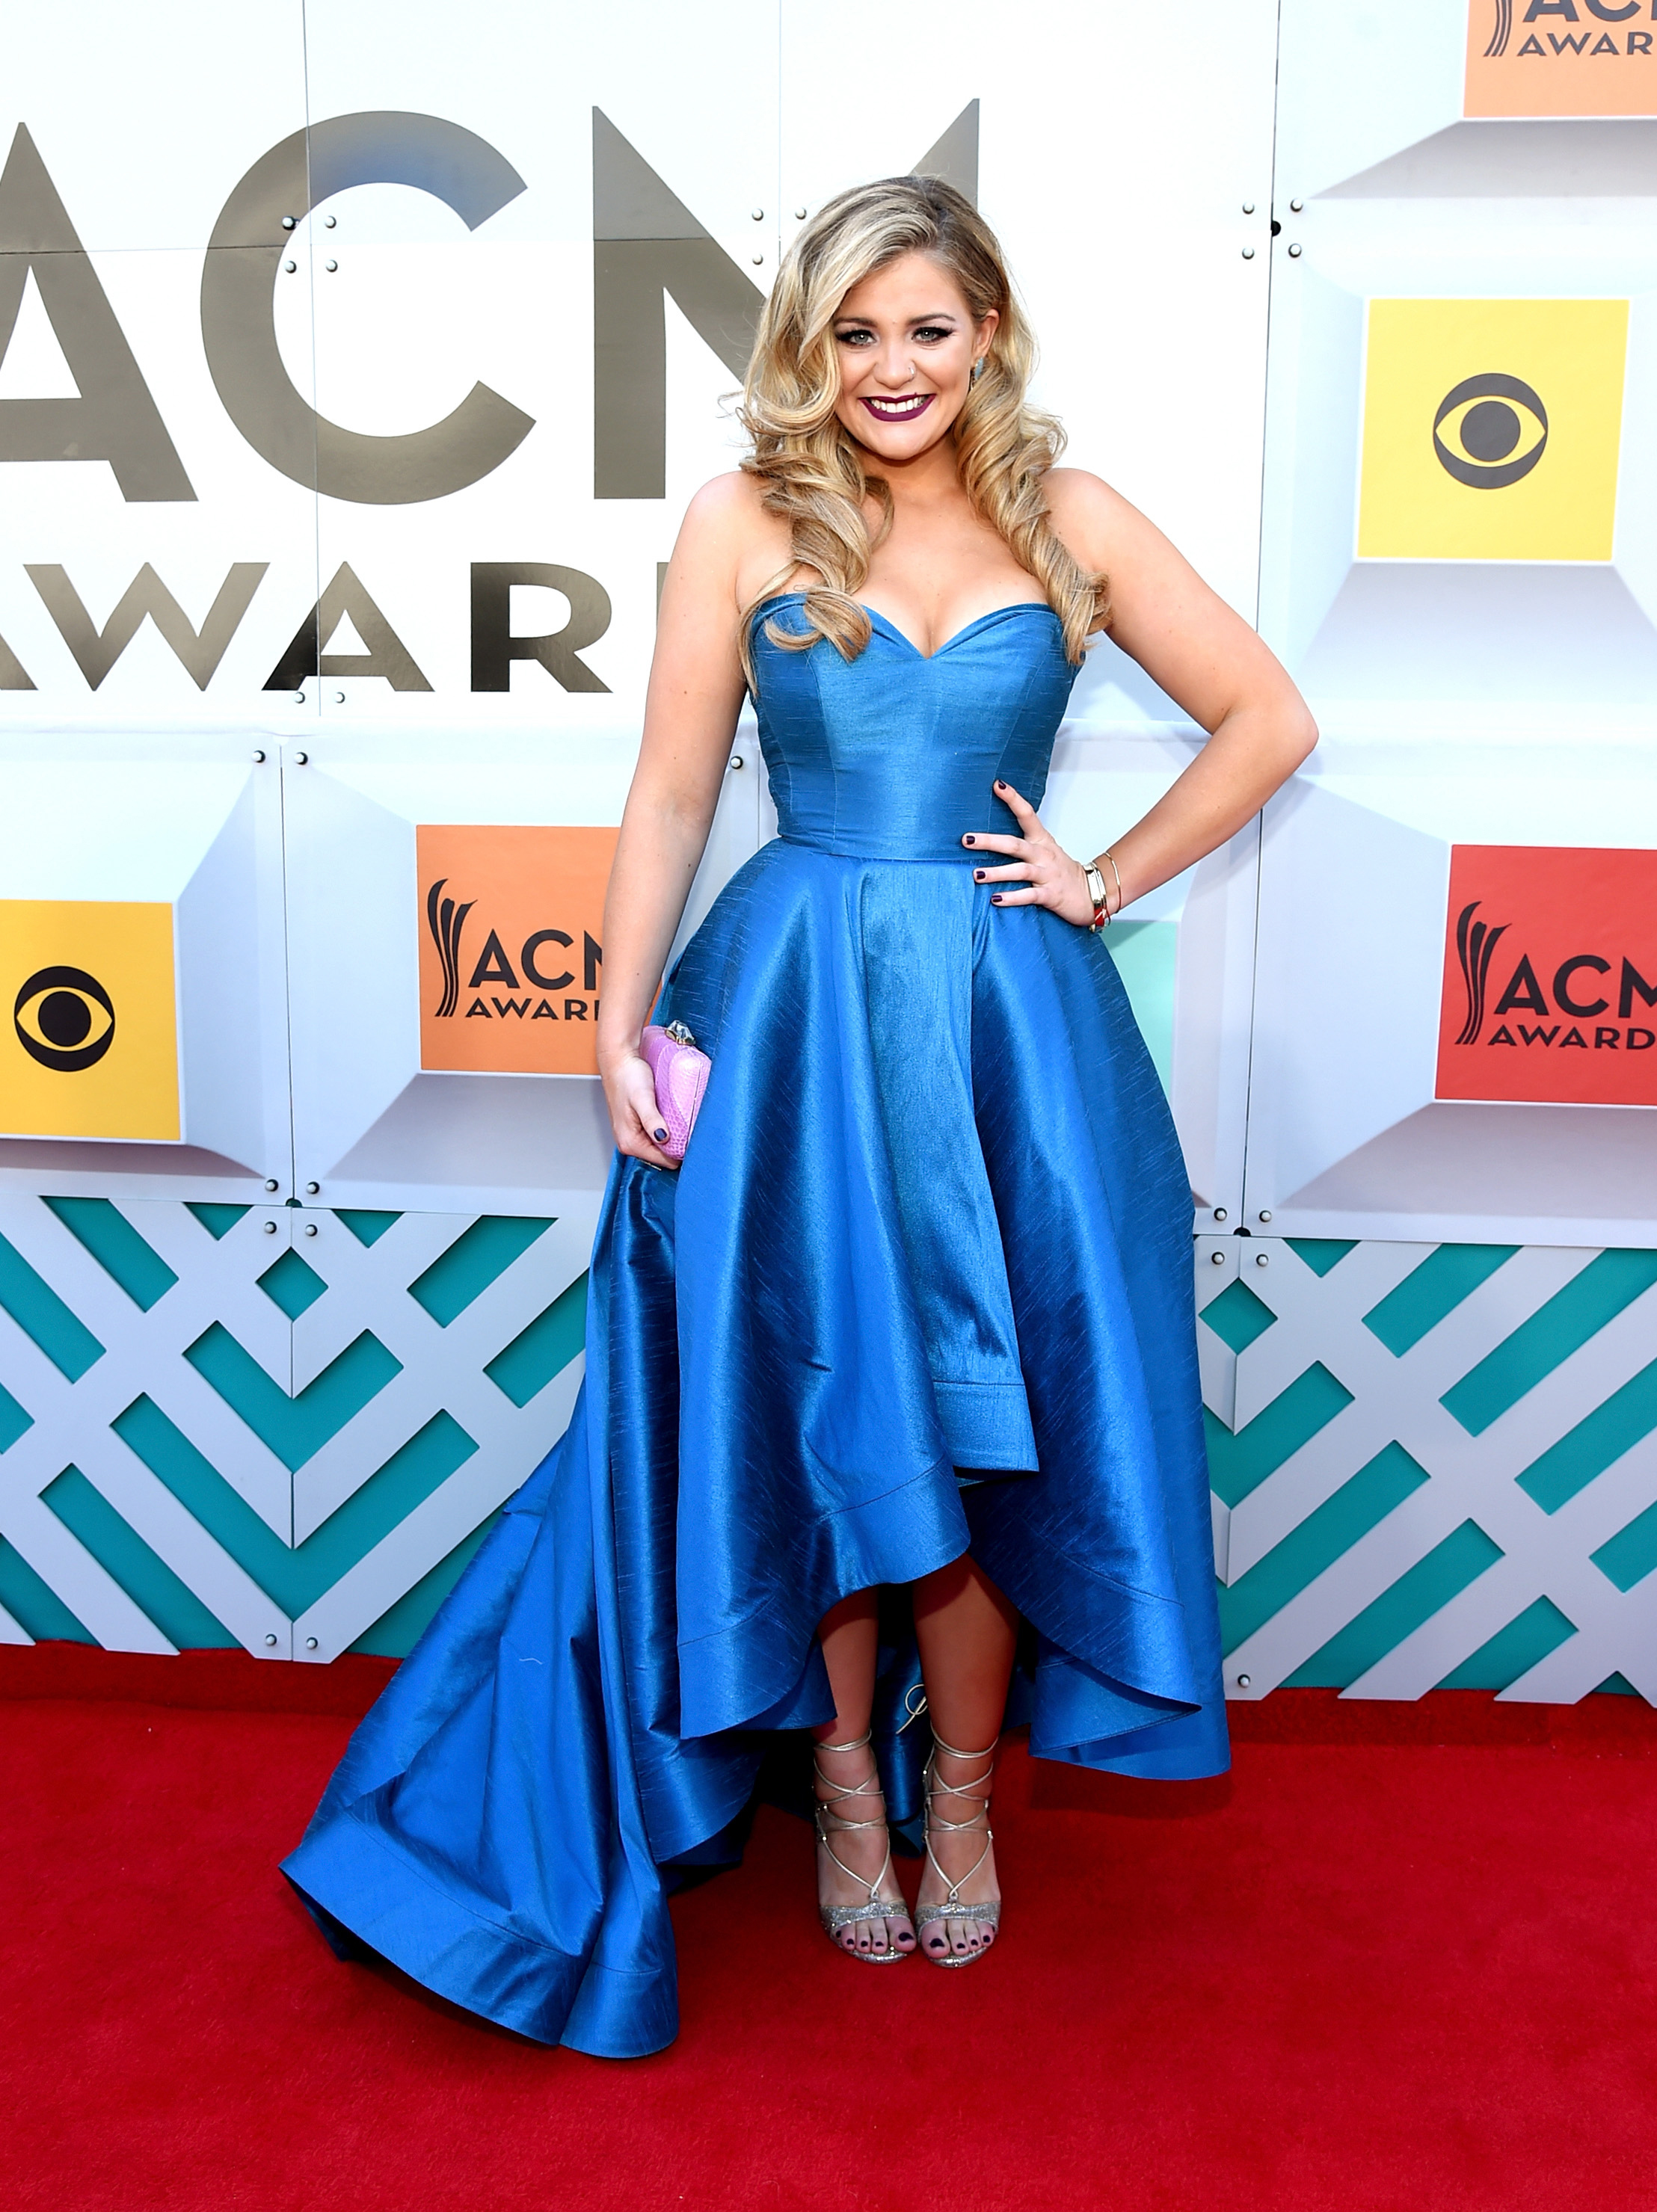 Lauren Alaina 2016 ACM Awards.jpg